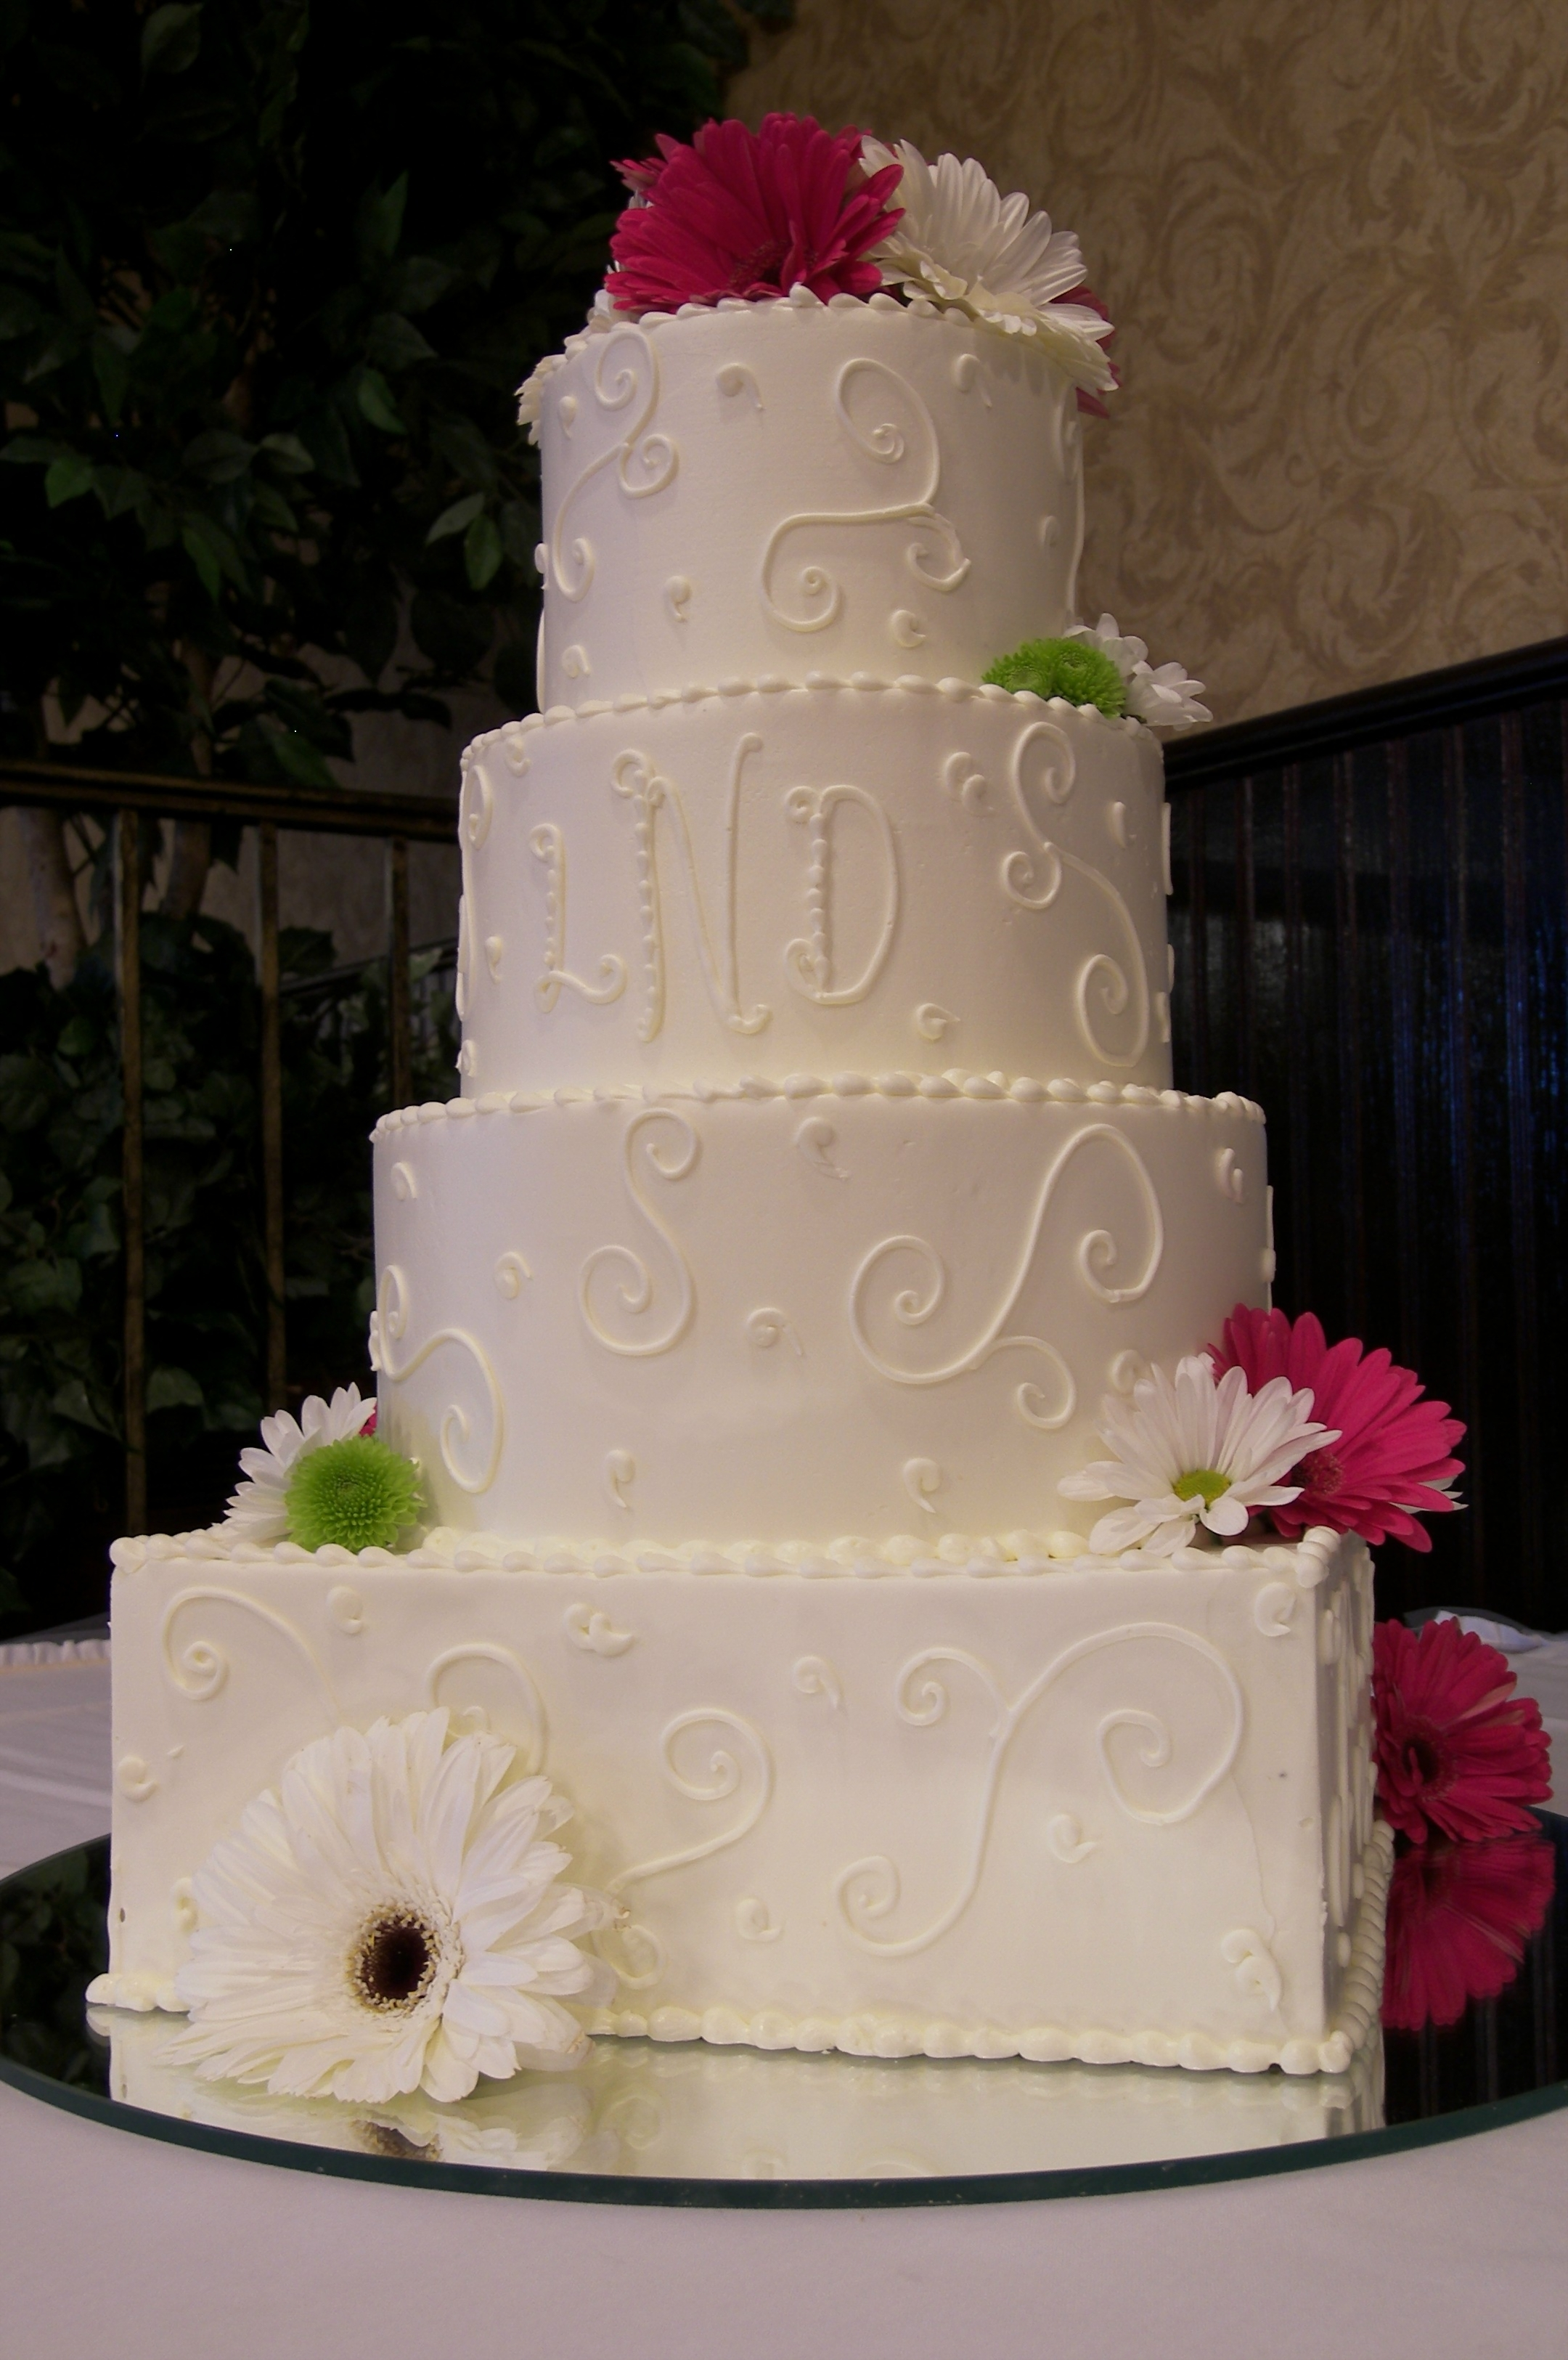 buttercream wedding cakes  raquo  Buttercream     Wedding Cake Art   Design Center Joe s Cake